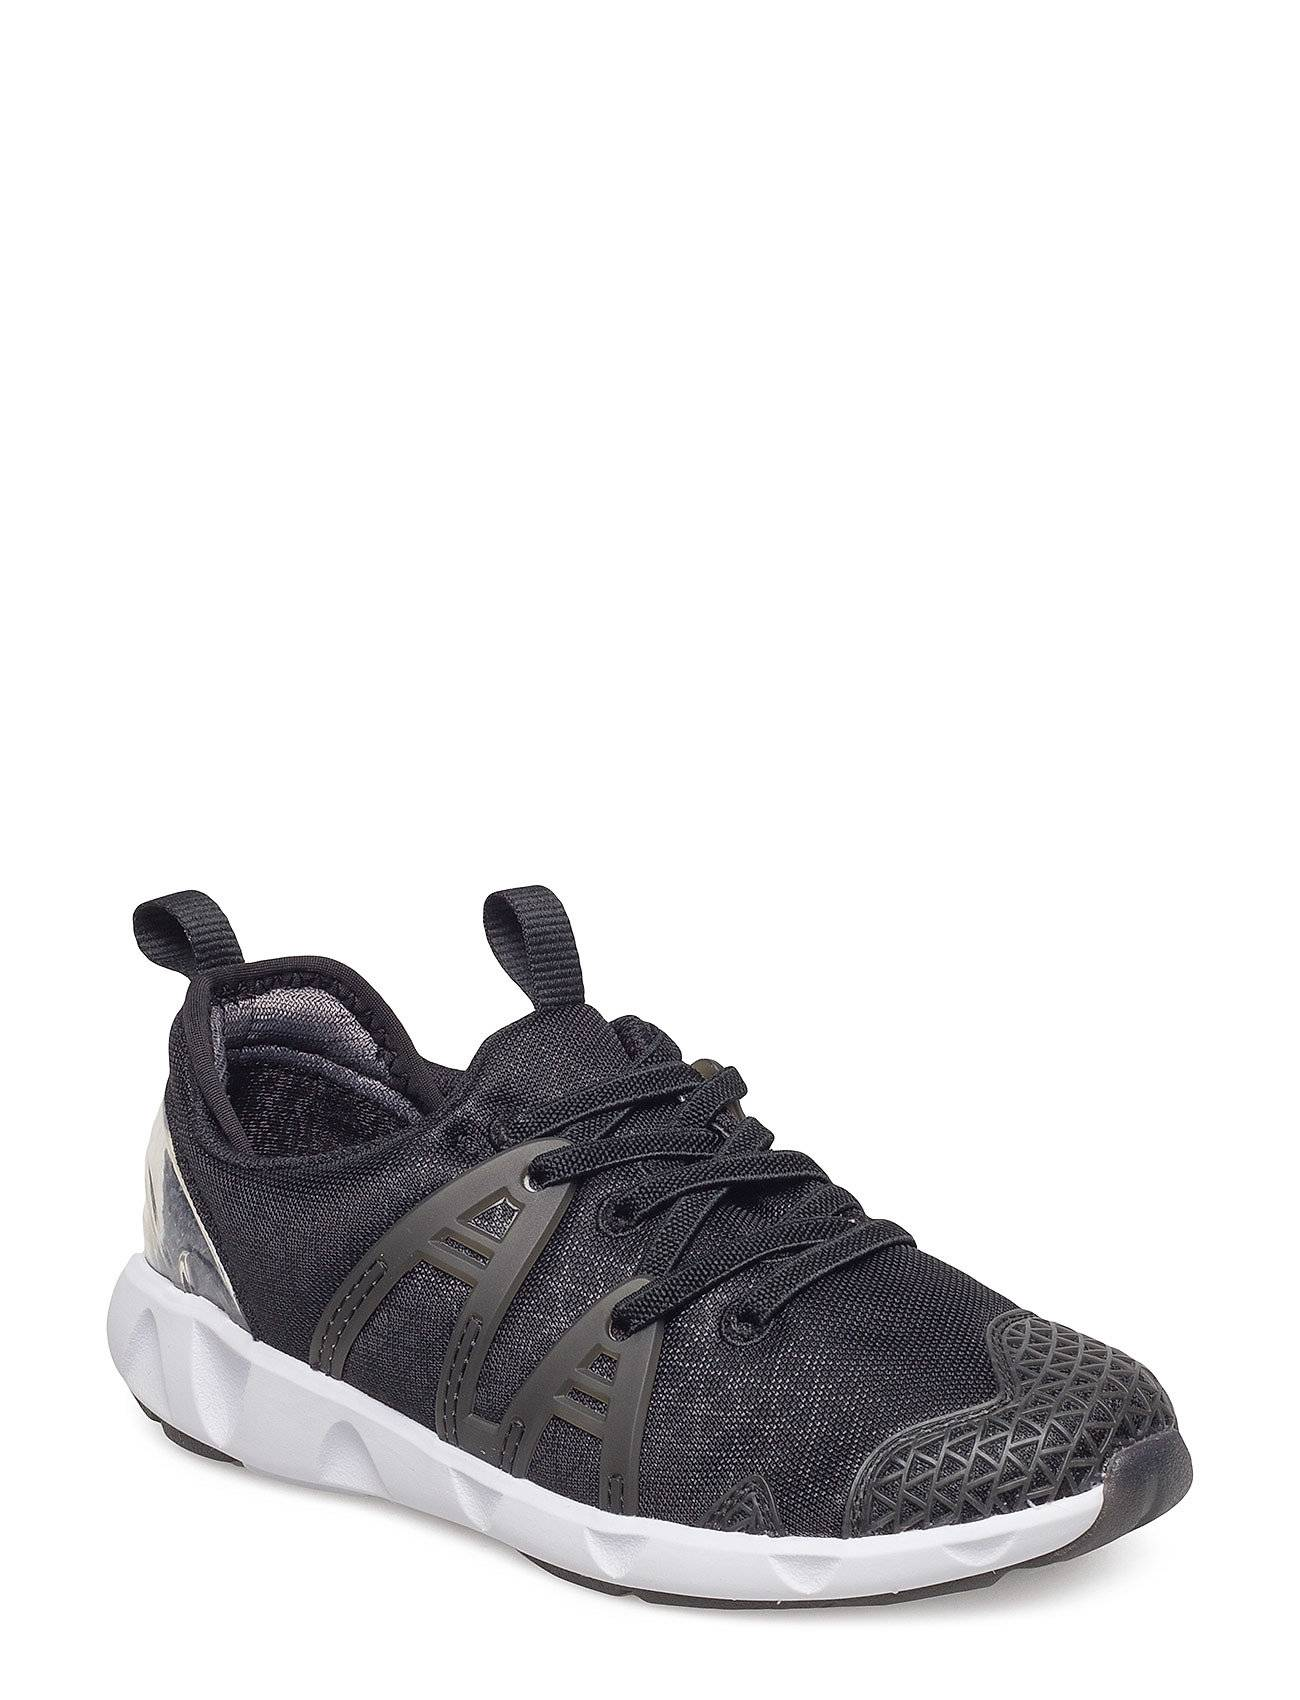 Clarks Luminous Run